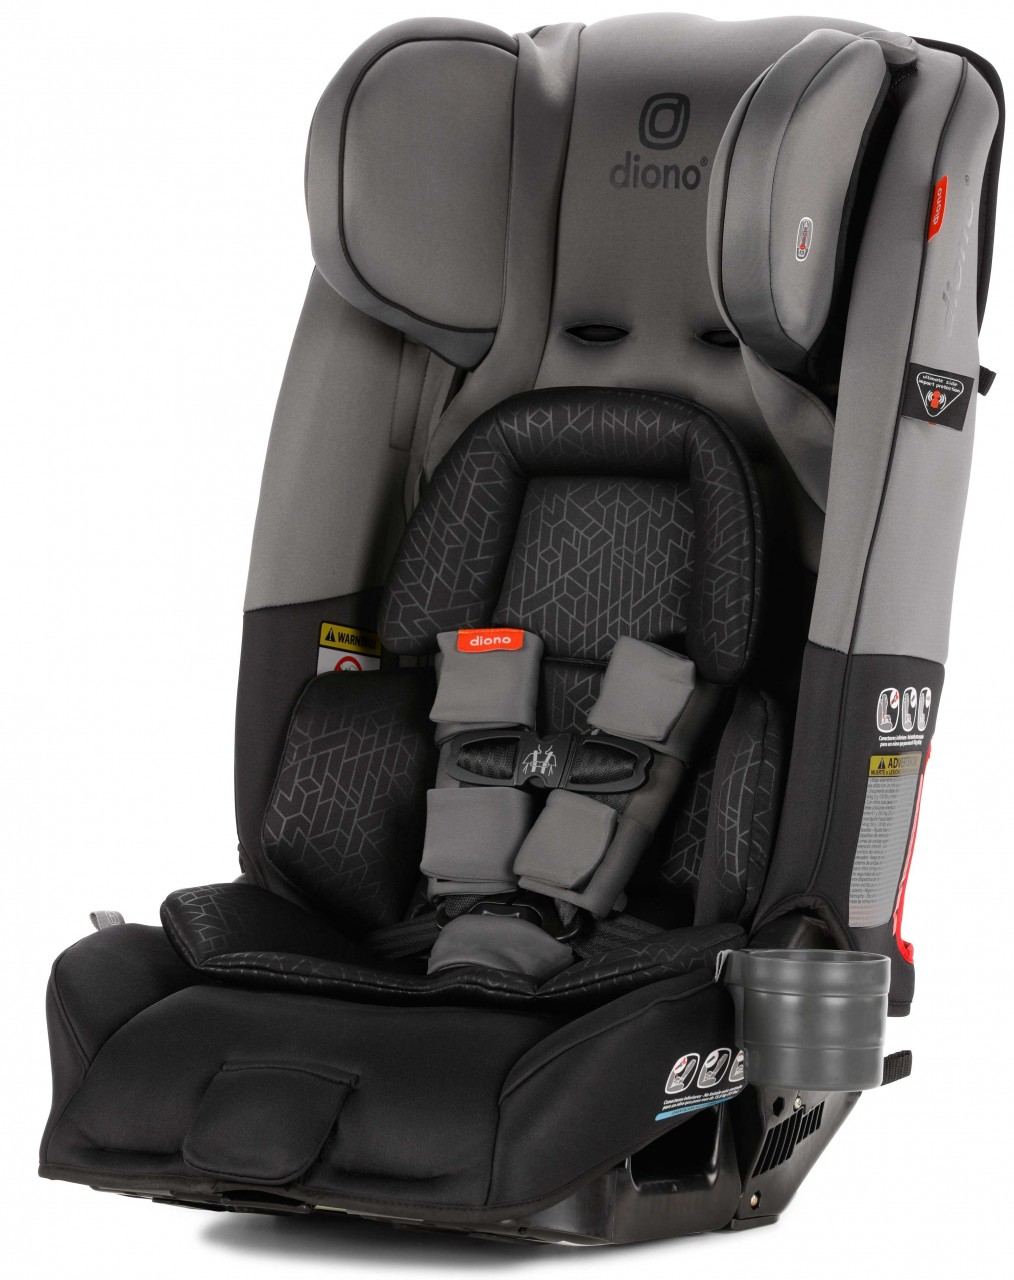 Great How To Enter Diono Radian Rxt Most Trusted Source Car Seat Ratings Diono Radian R120 Recall Diono Radian R120 Forward Facing Installation baby Diono Radian R120